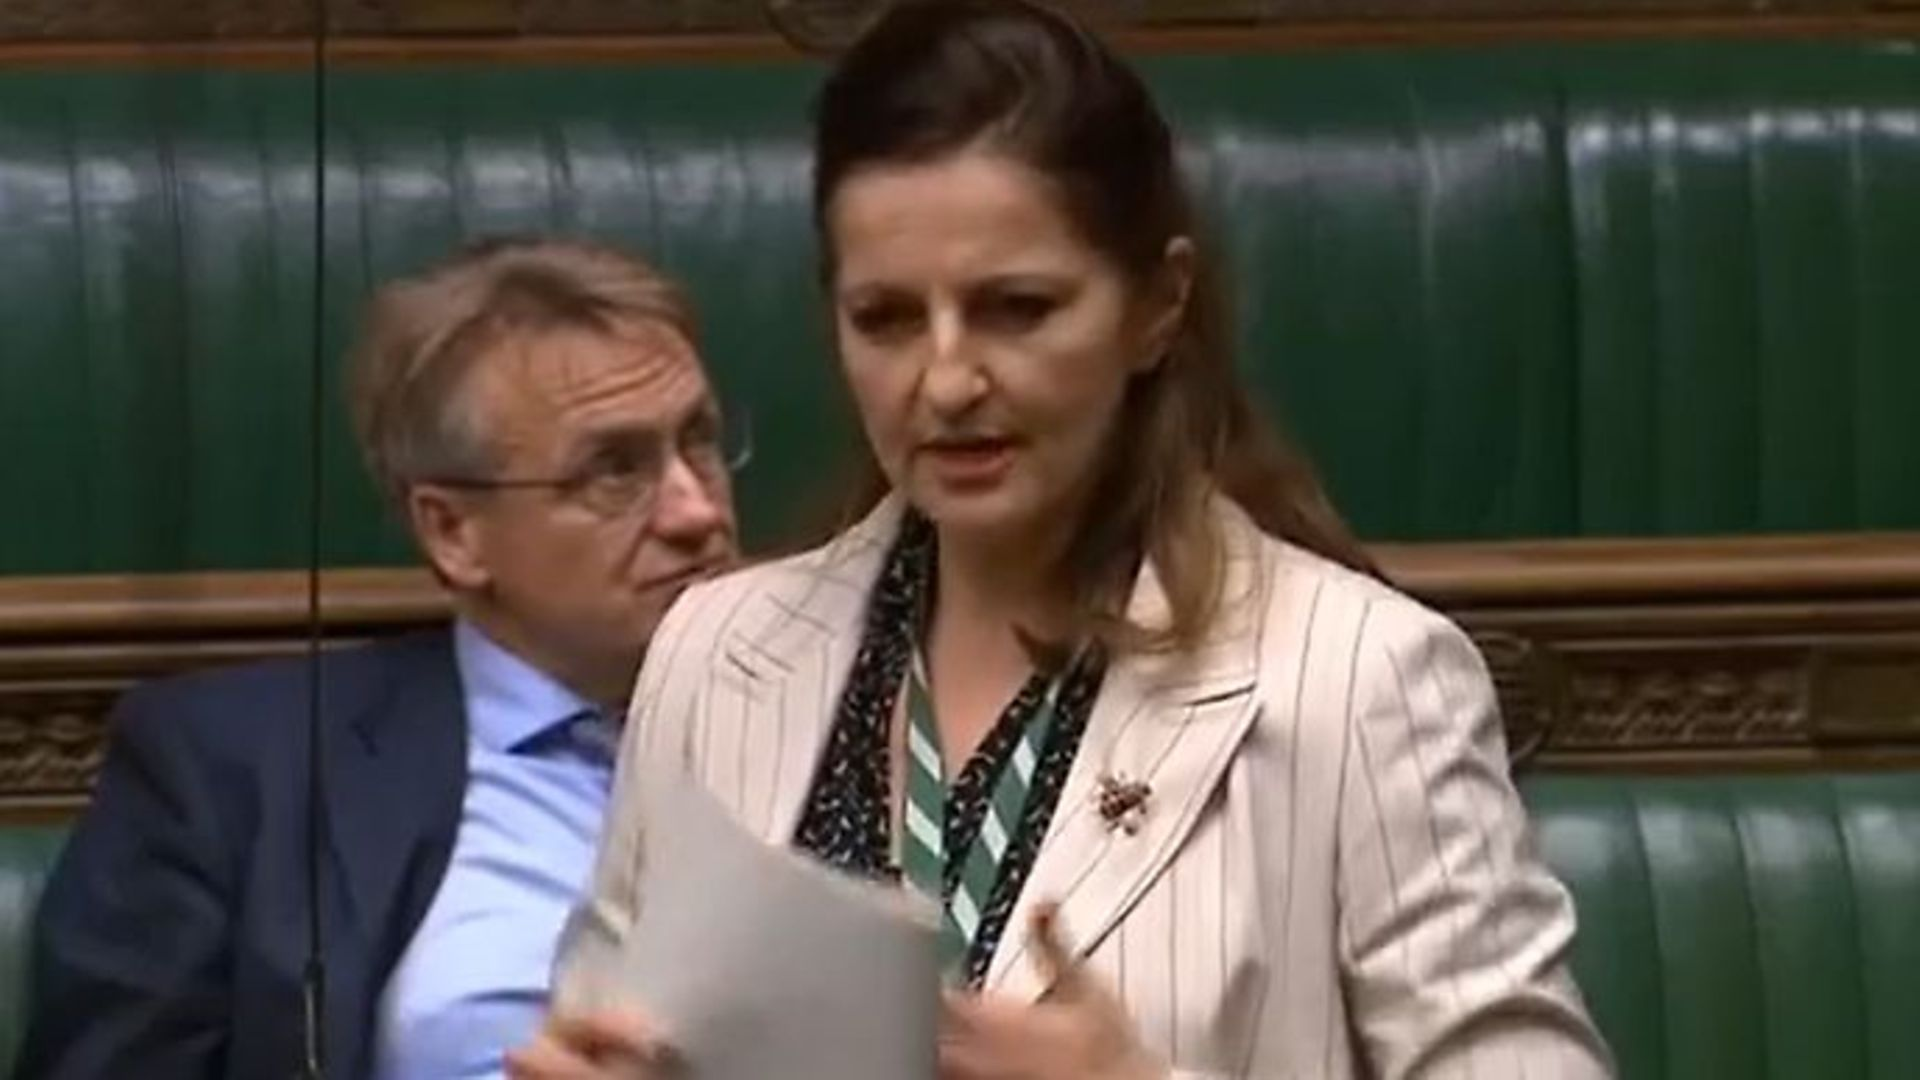 Eastbourne MP Caroline Ansell speaking in the House of Commons - Credit: Facebook, Parliamentlive.tv